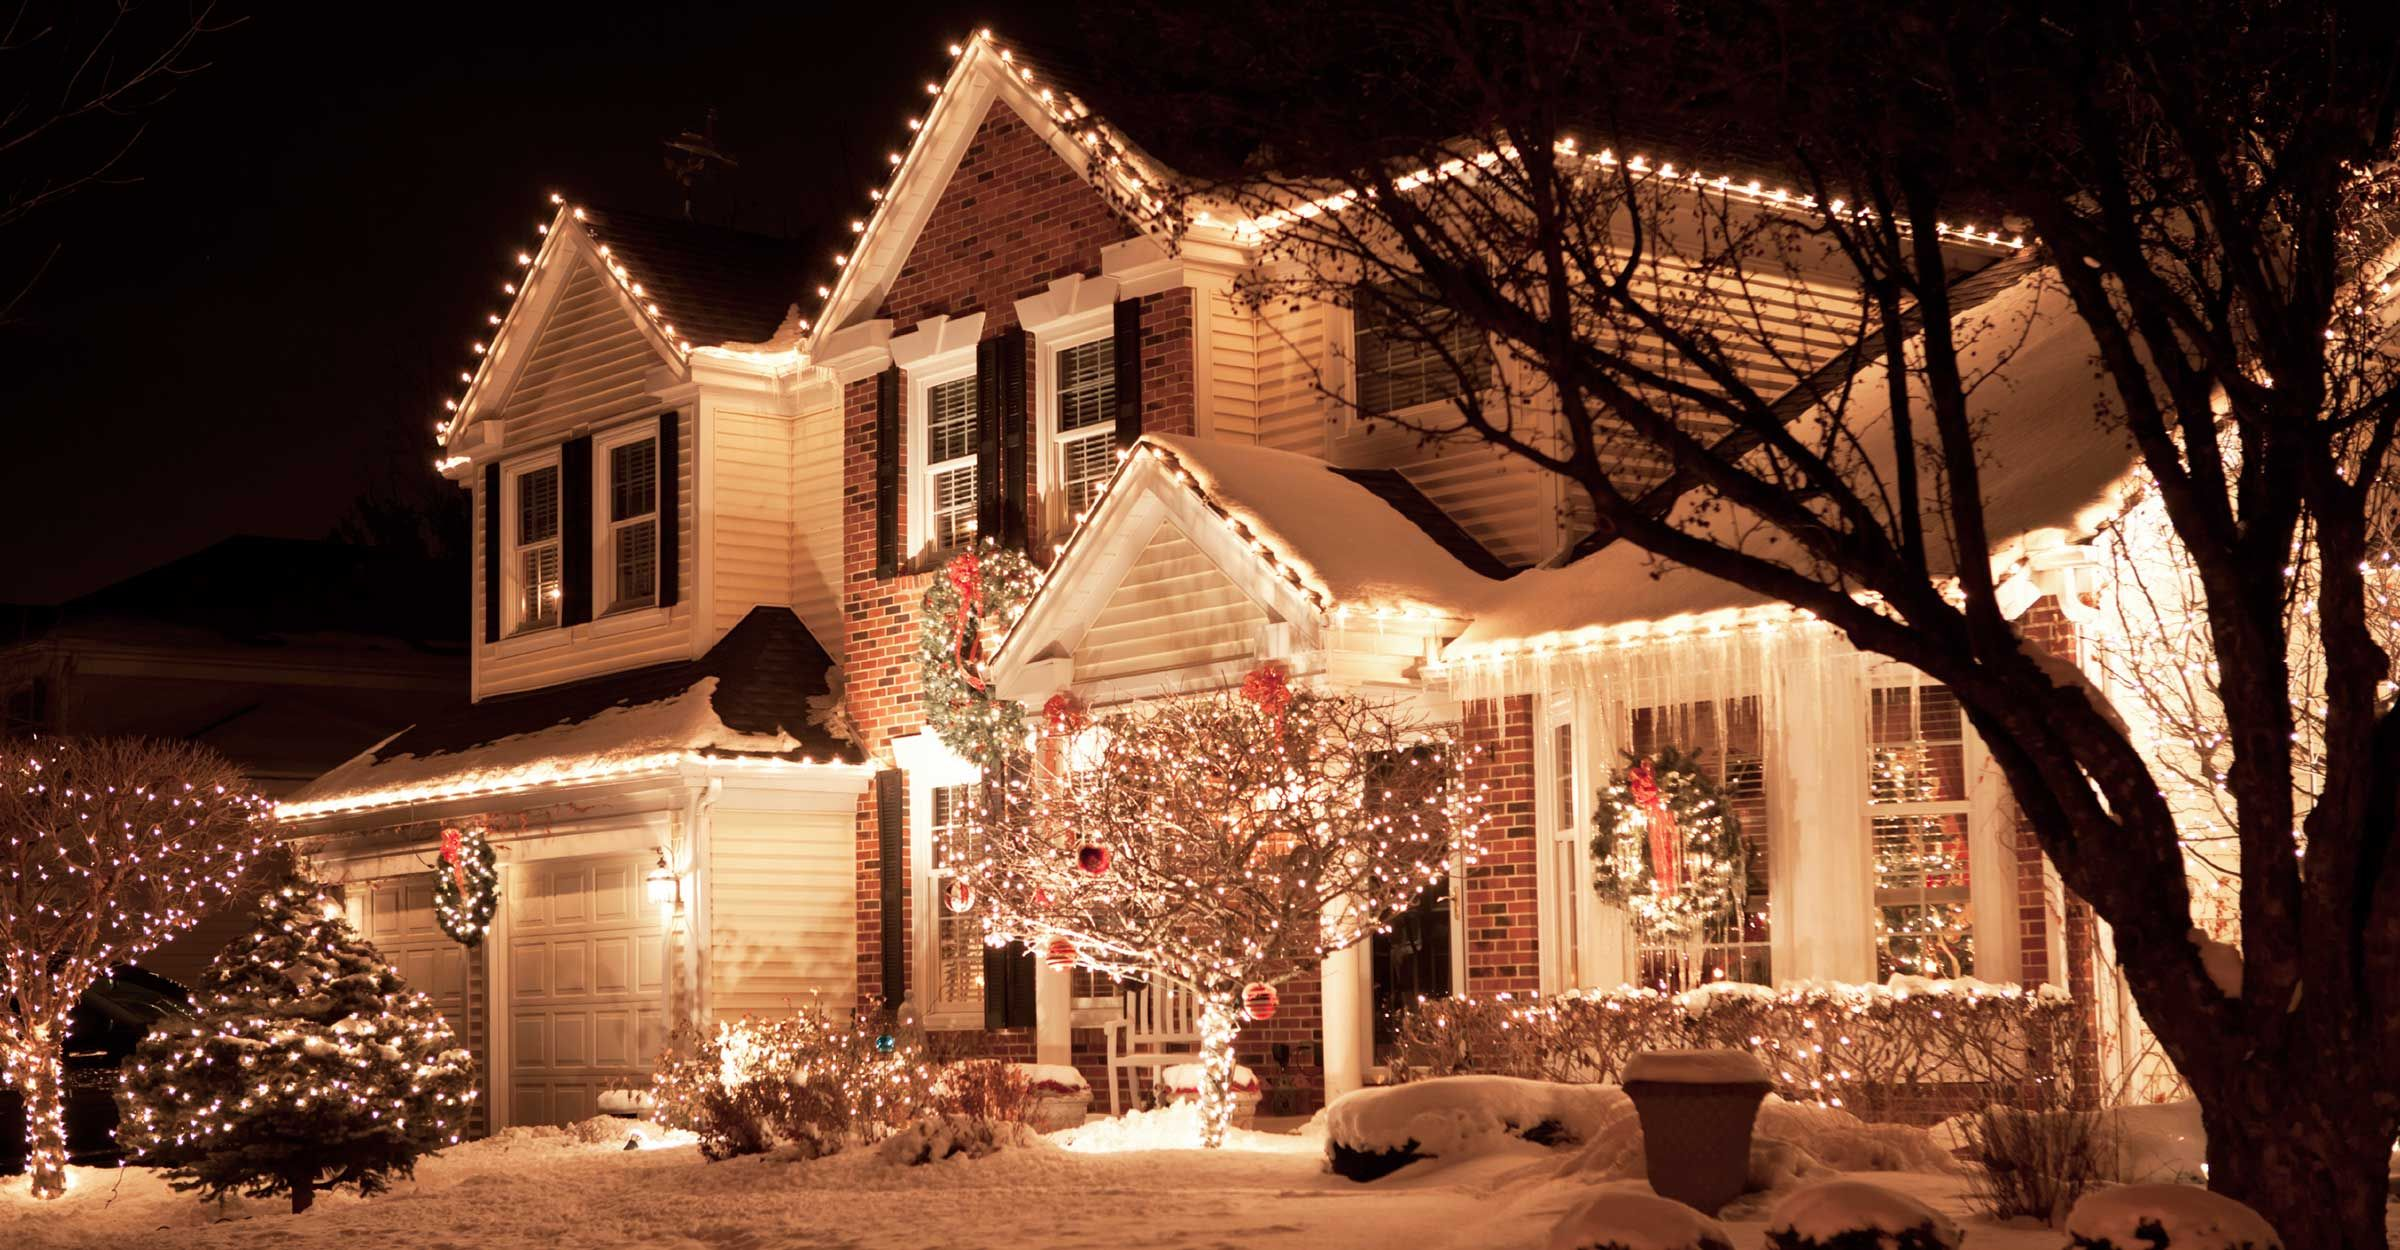 Outdoor Christmas Lights Ideas For The Roof Christmas Lights Etc Christmas House Lights Outdoor Christmas Lights Christmas Lights Outside